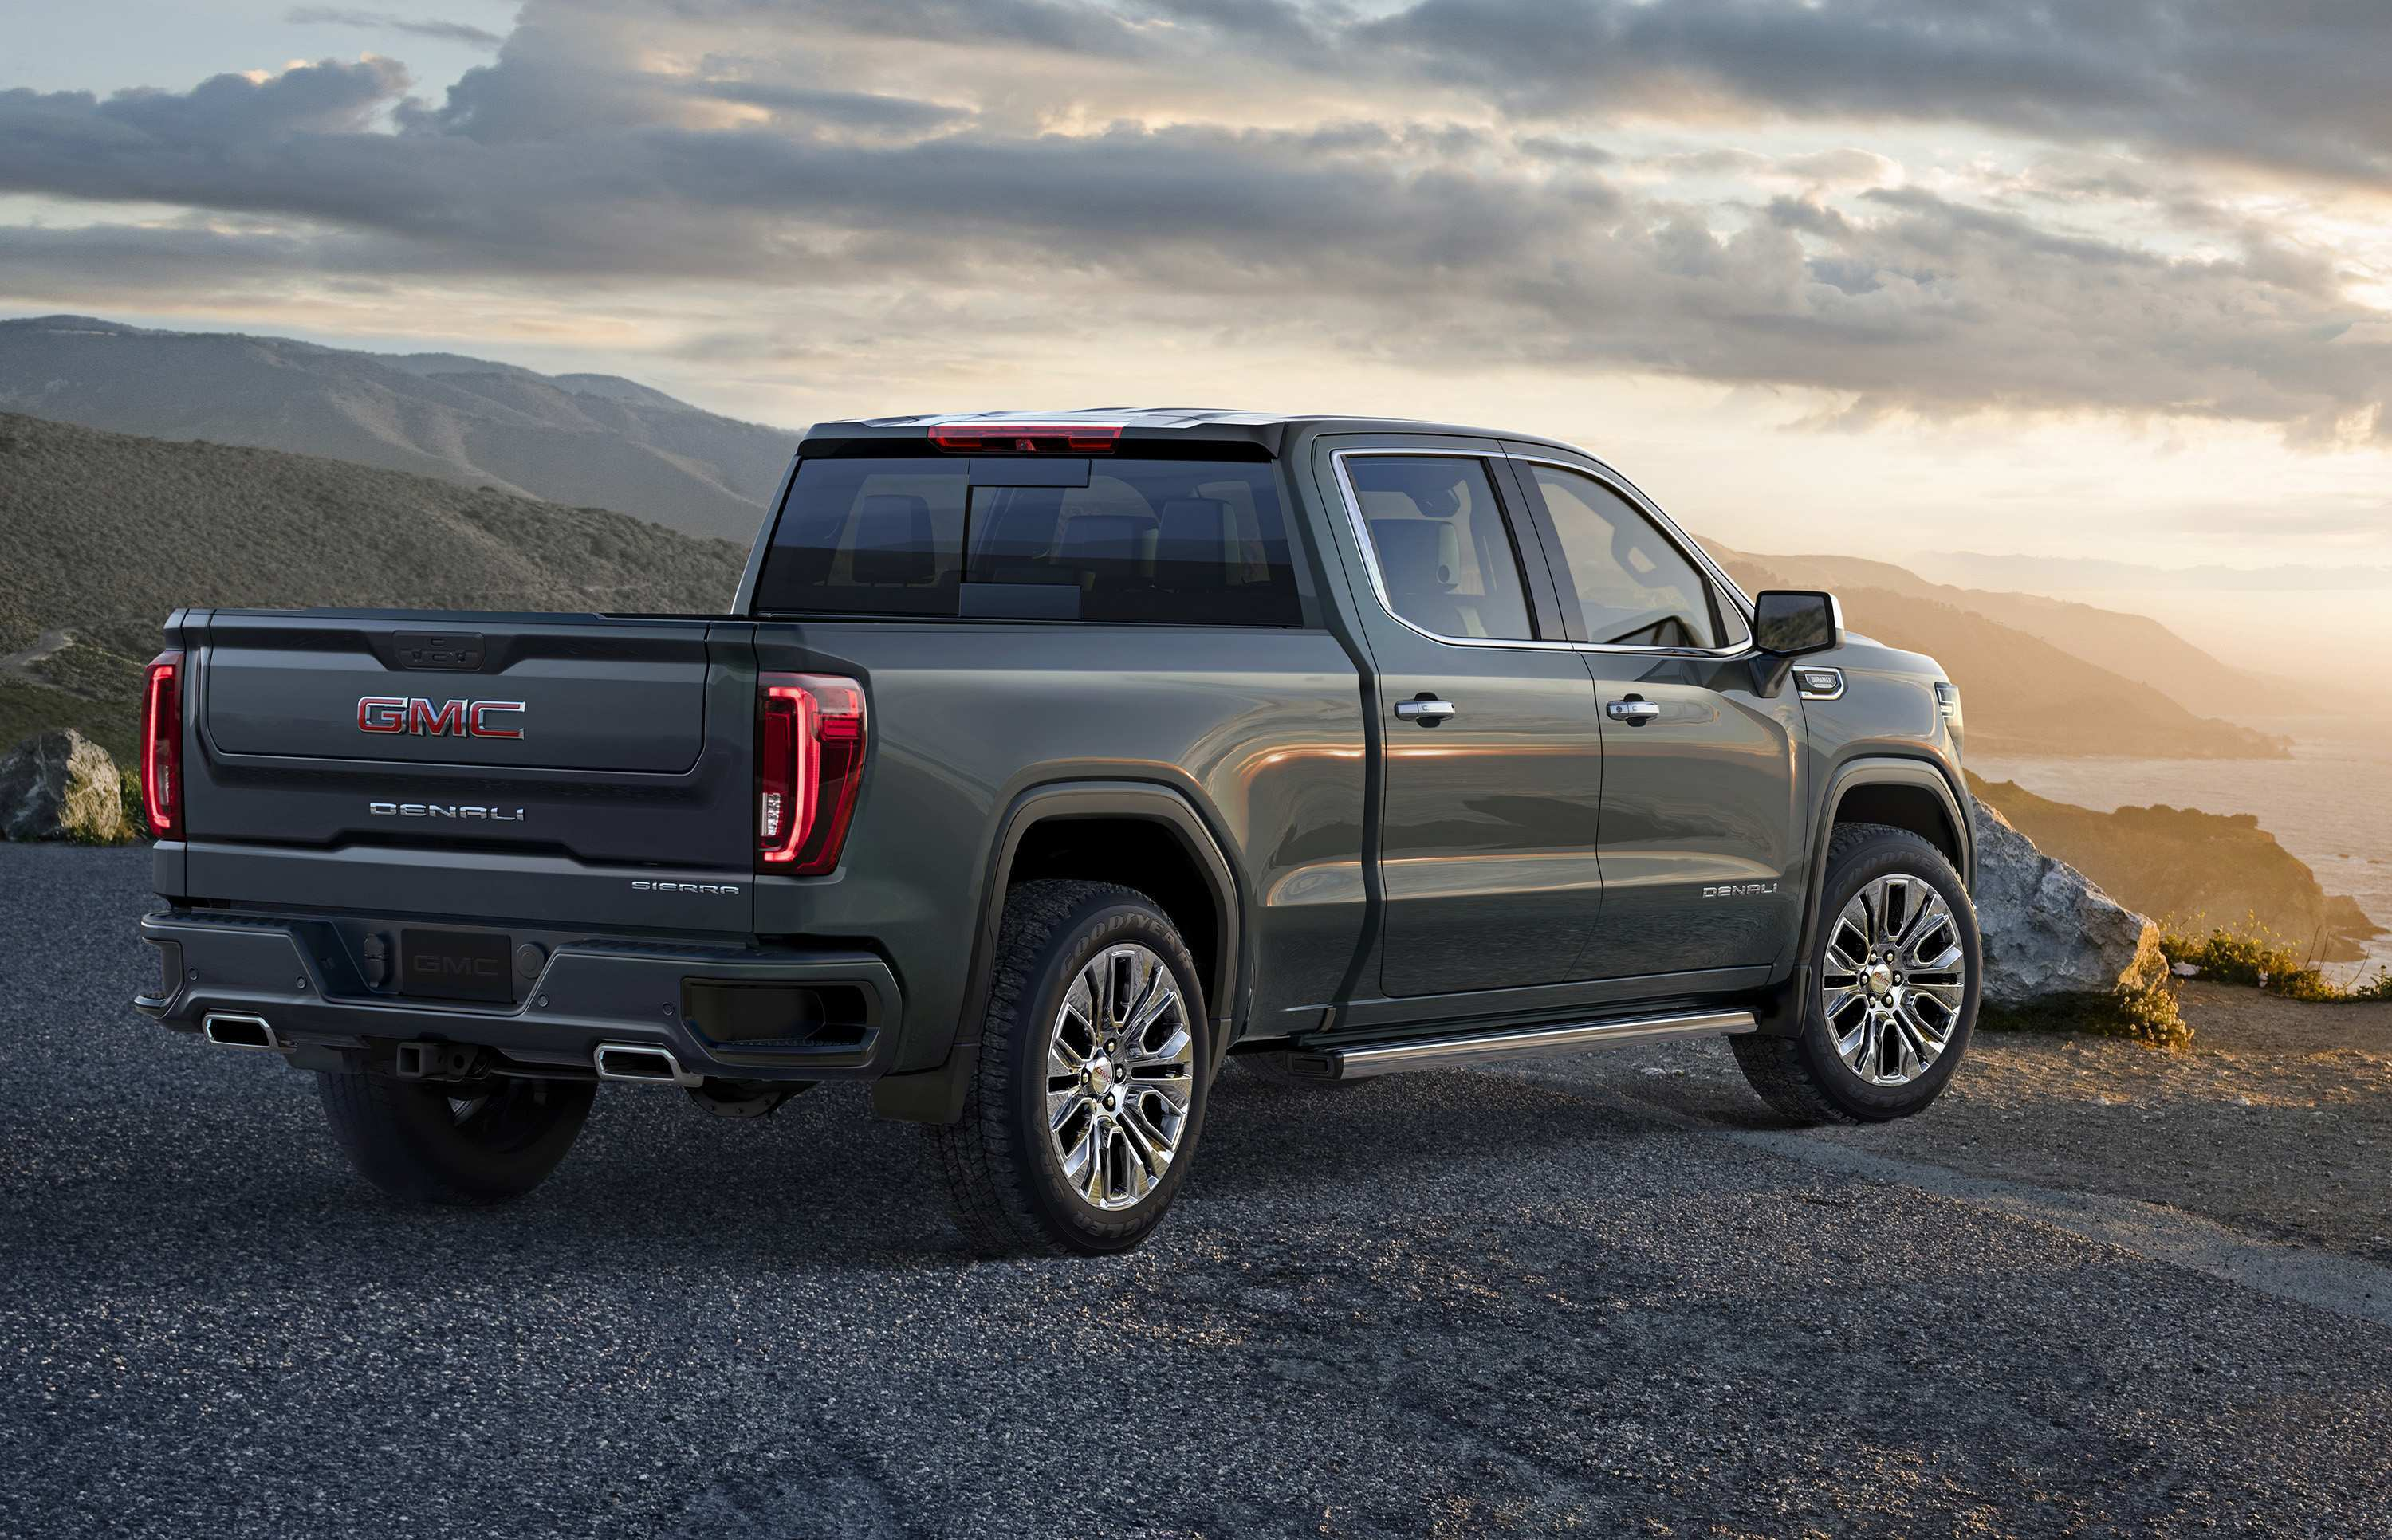 16 The The Gmc Colorado 2019 Redesign Price And Review Pictures for The Gmc Colorado 2019 Redesign Price And Review